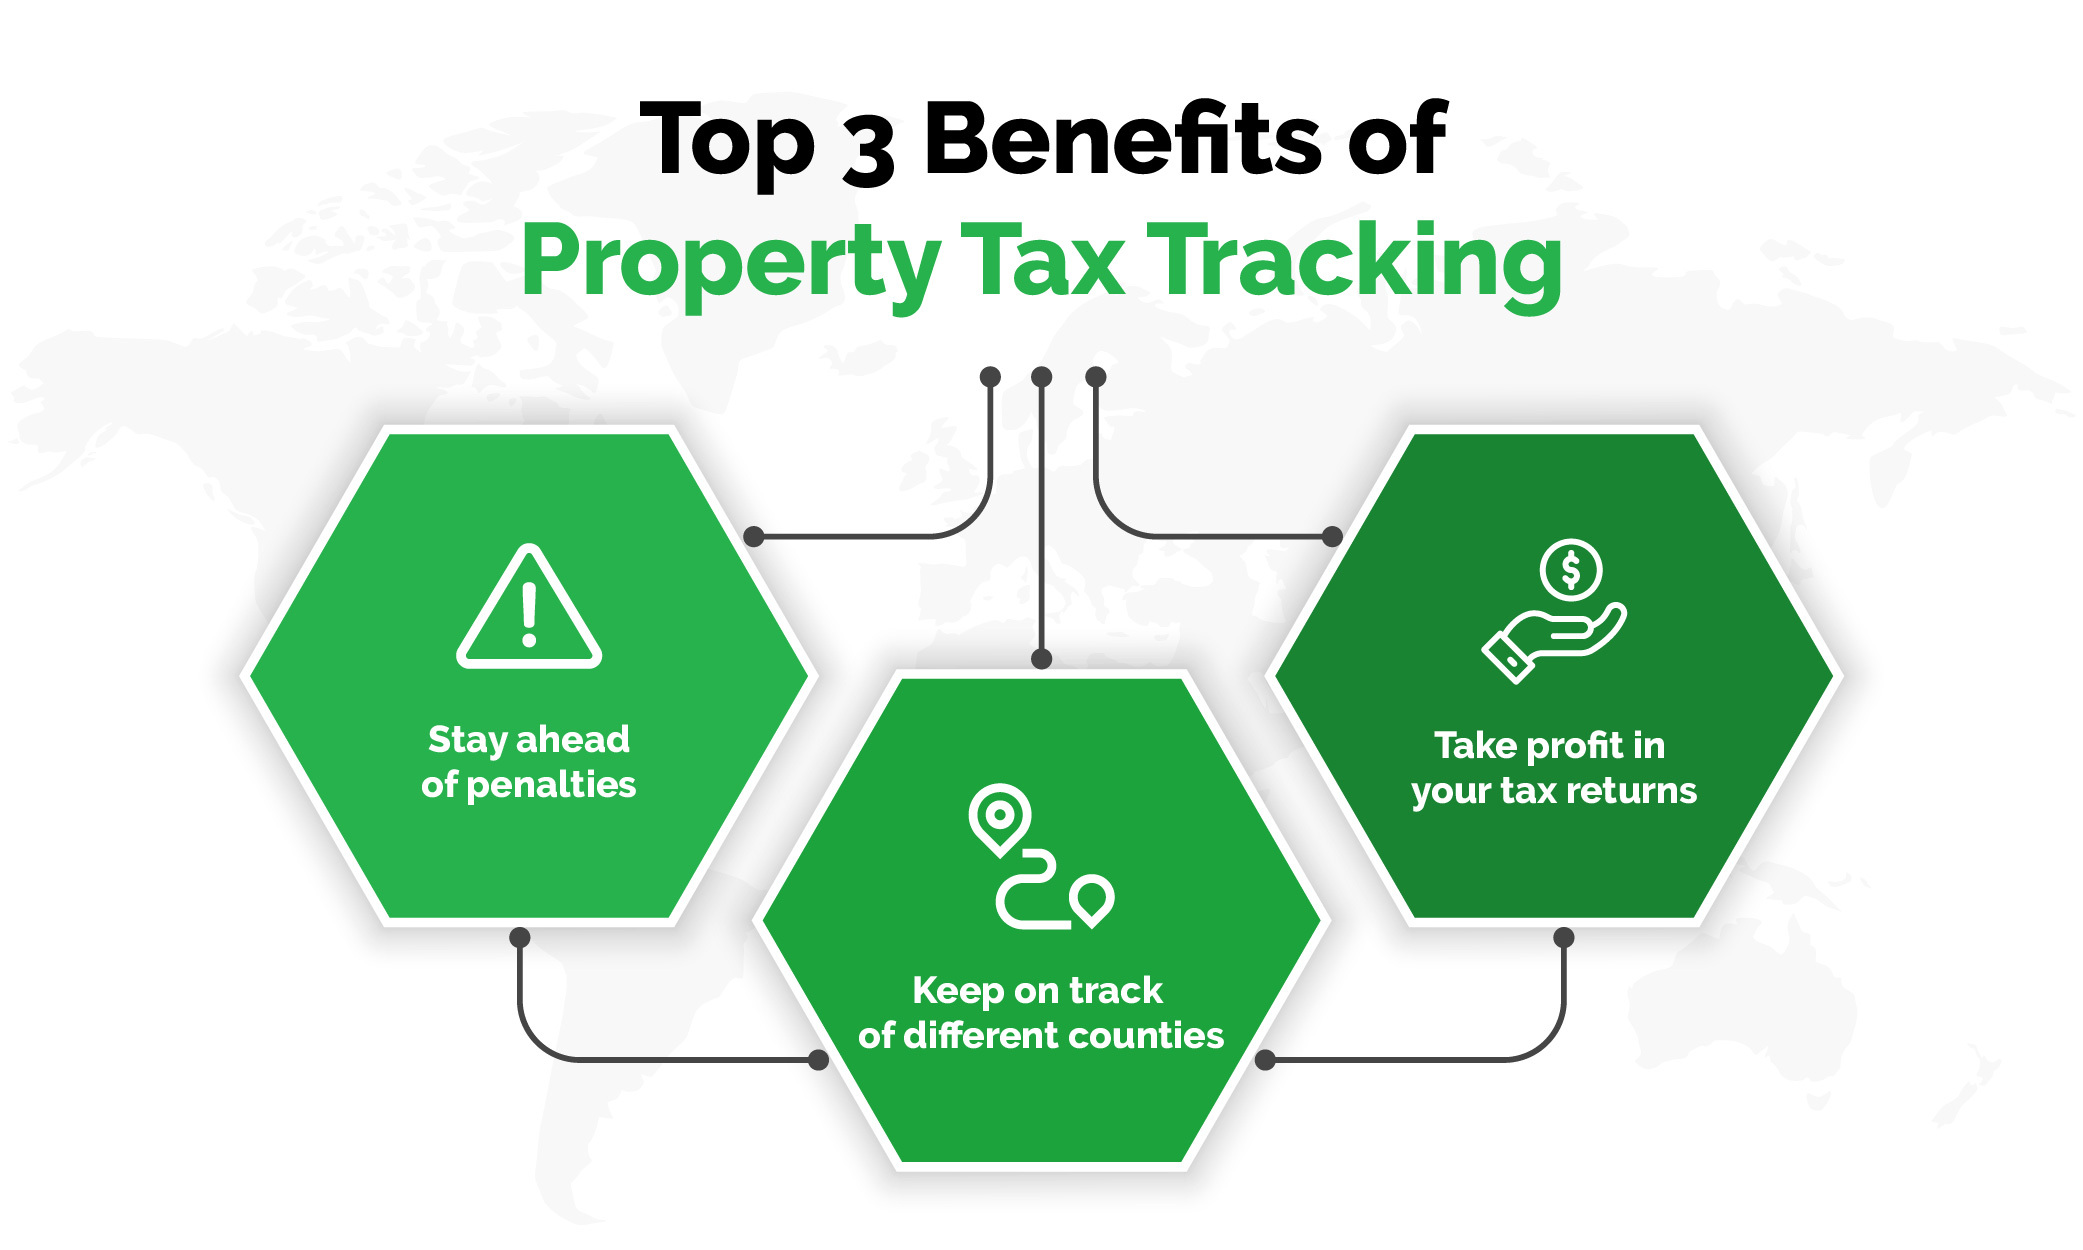 Top 3 Benefits of Property Tax Tracking